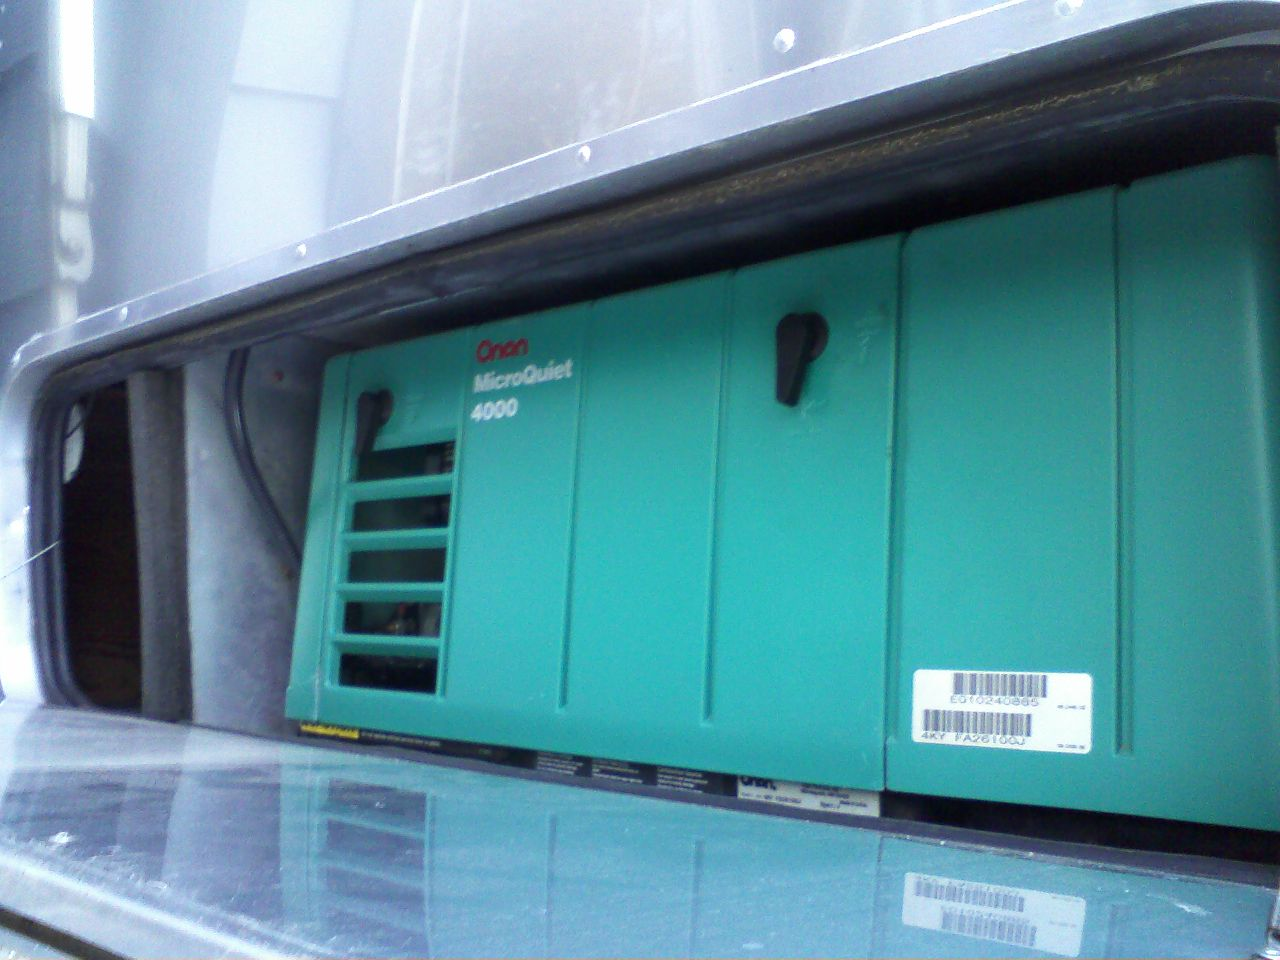 Click image for larger version  Name:Genset Access2.jpg Views:119 Size:147.4 KB ID:123466